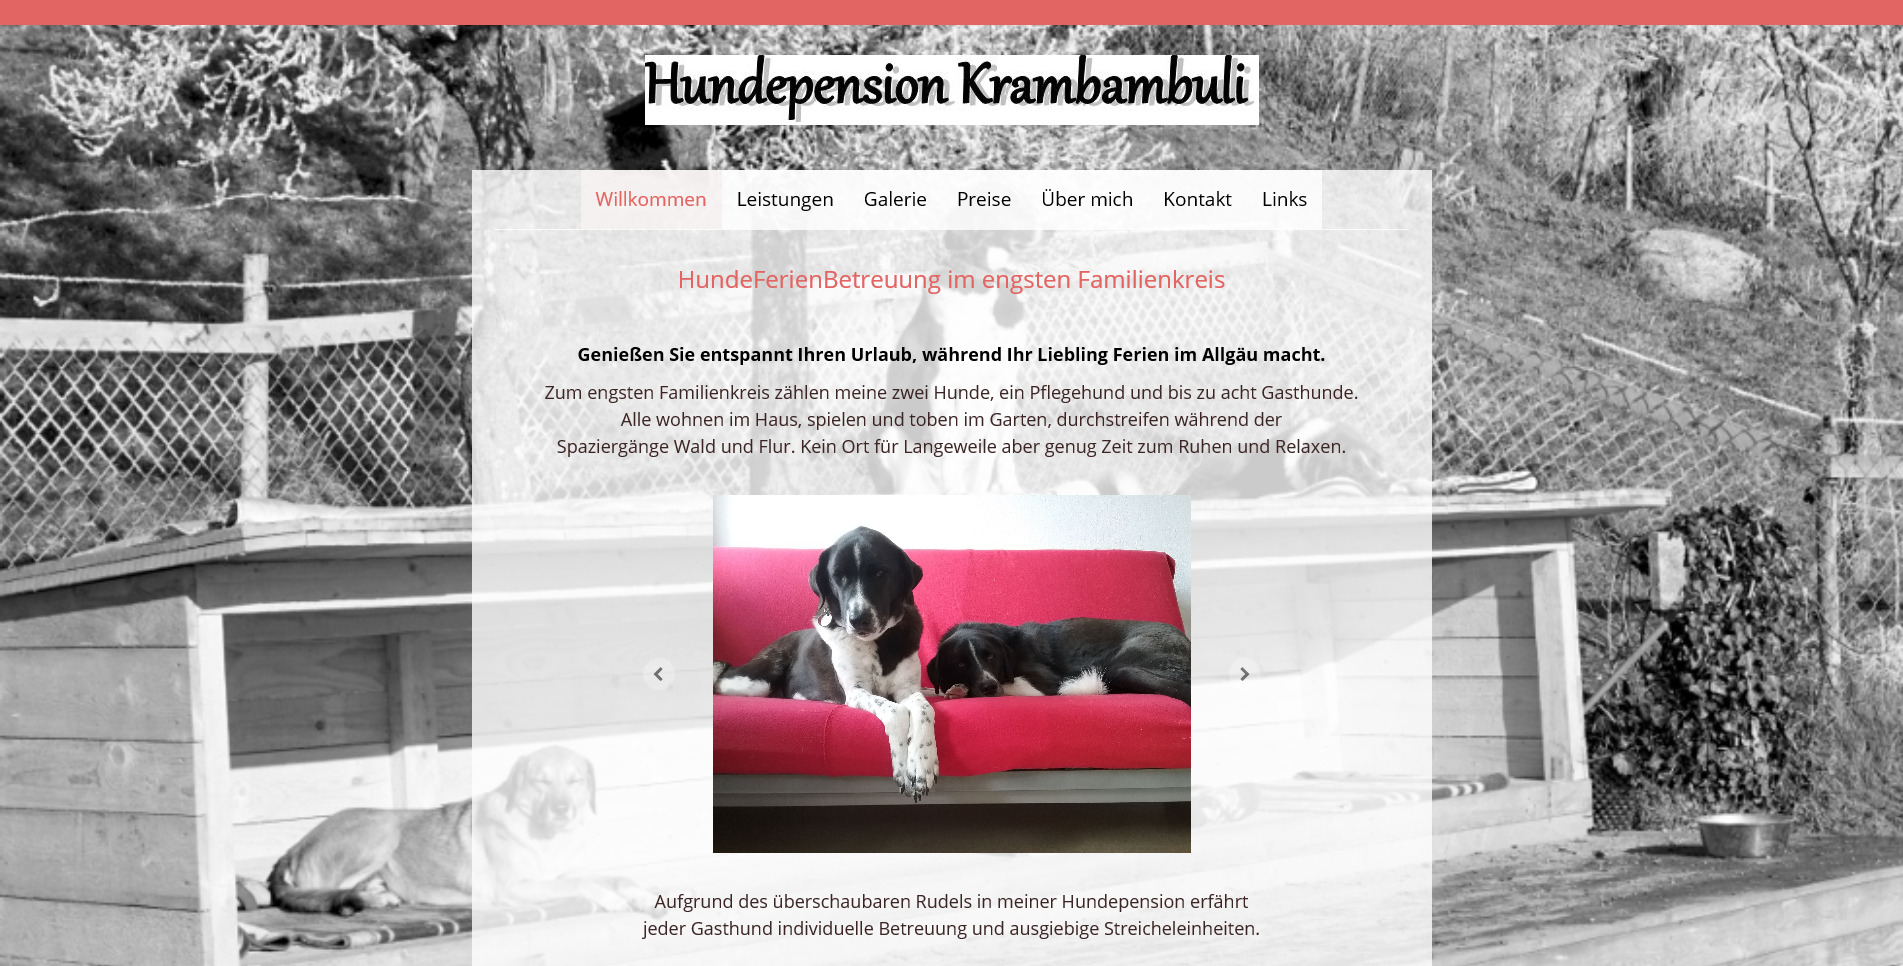 Hundepension Krambambuli